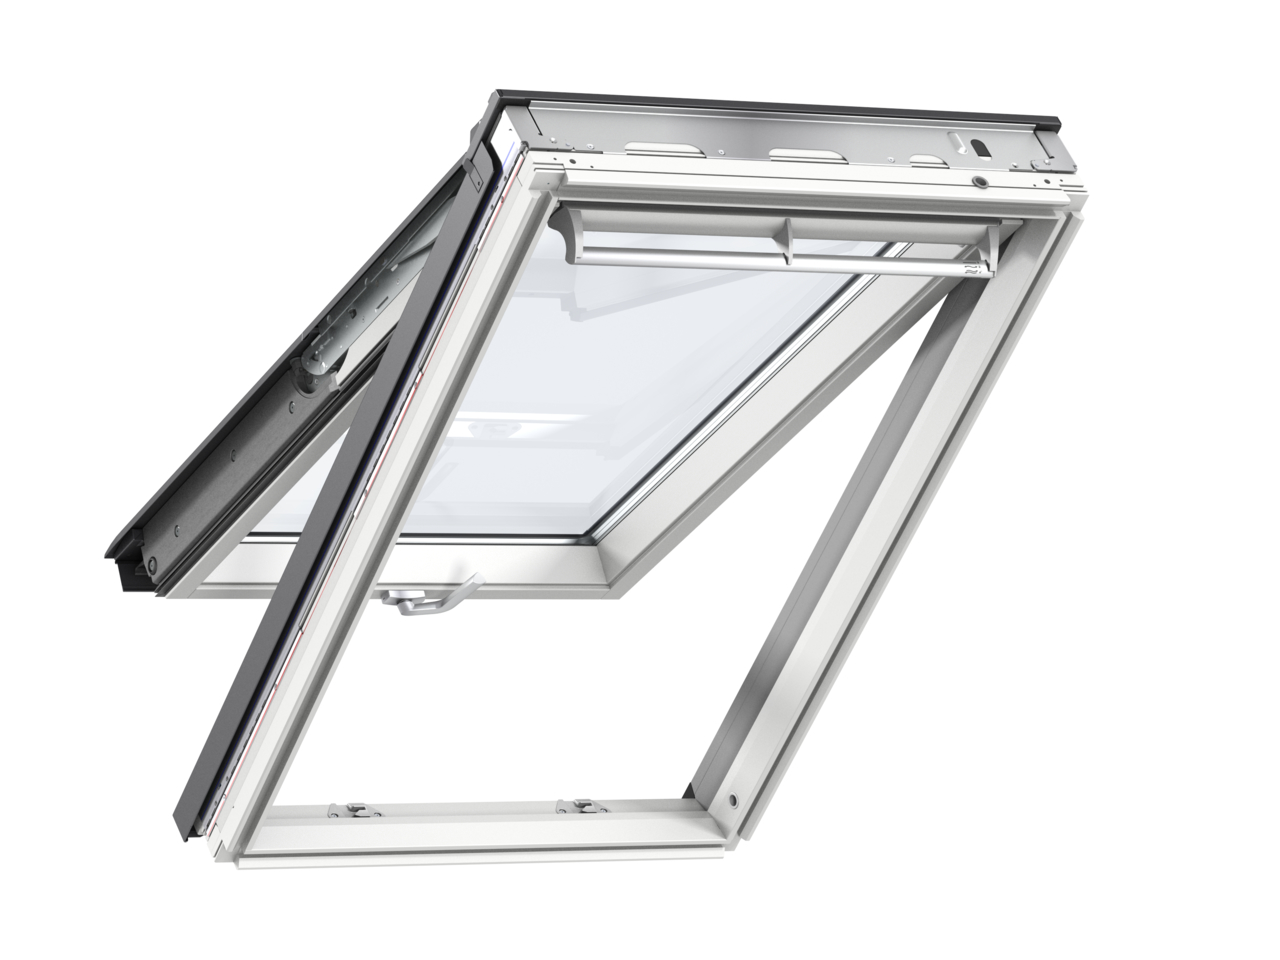 Velux GPL FK06 660 x 1180mm Top Hung Standard 70Pane Roof Window - White Painted